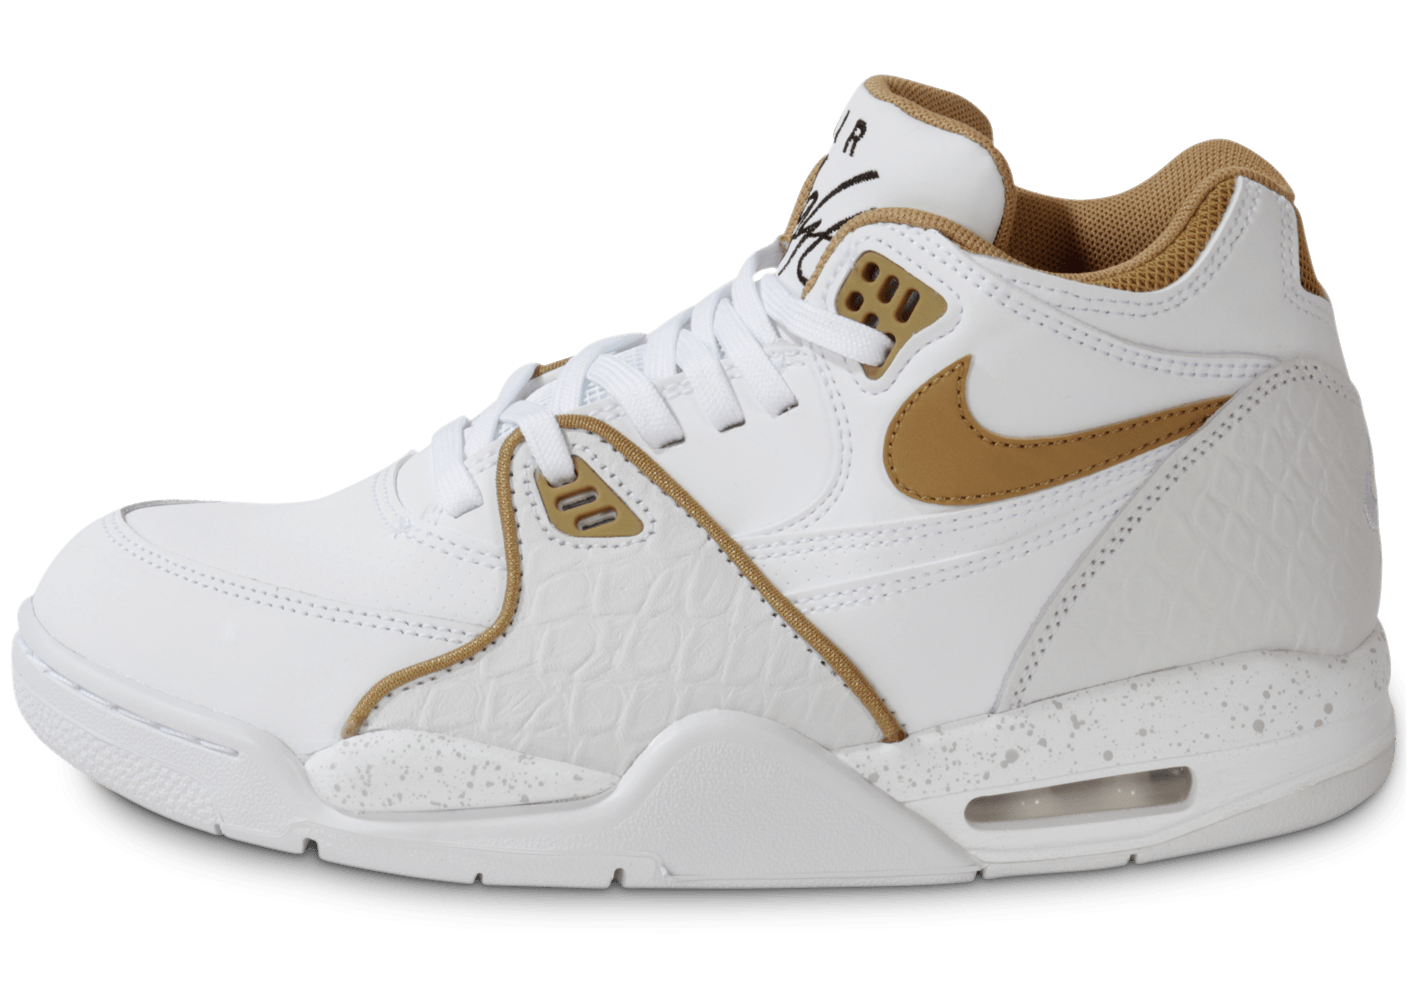 sports shoes 18e75 1b7a0 Nike Air Flight 89 Blanche Et Or - Chaussures Baskets homme